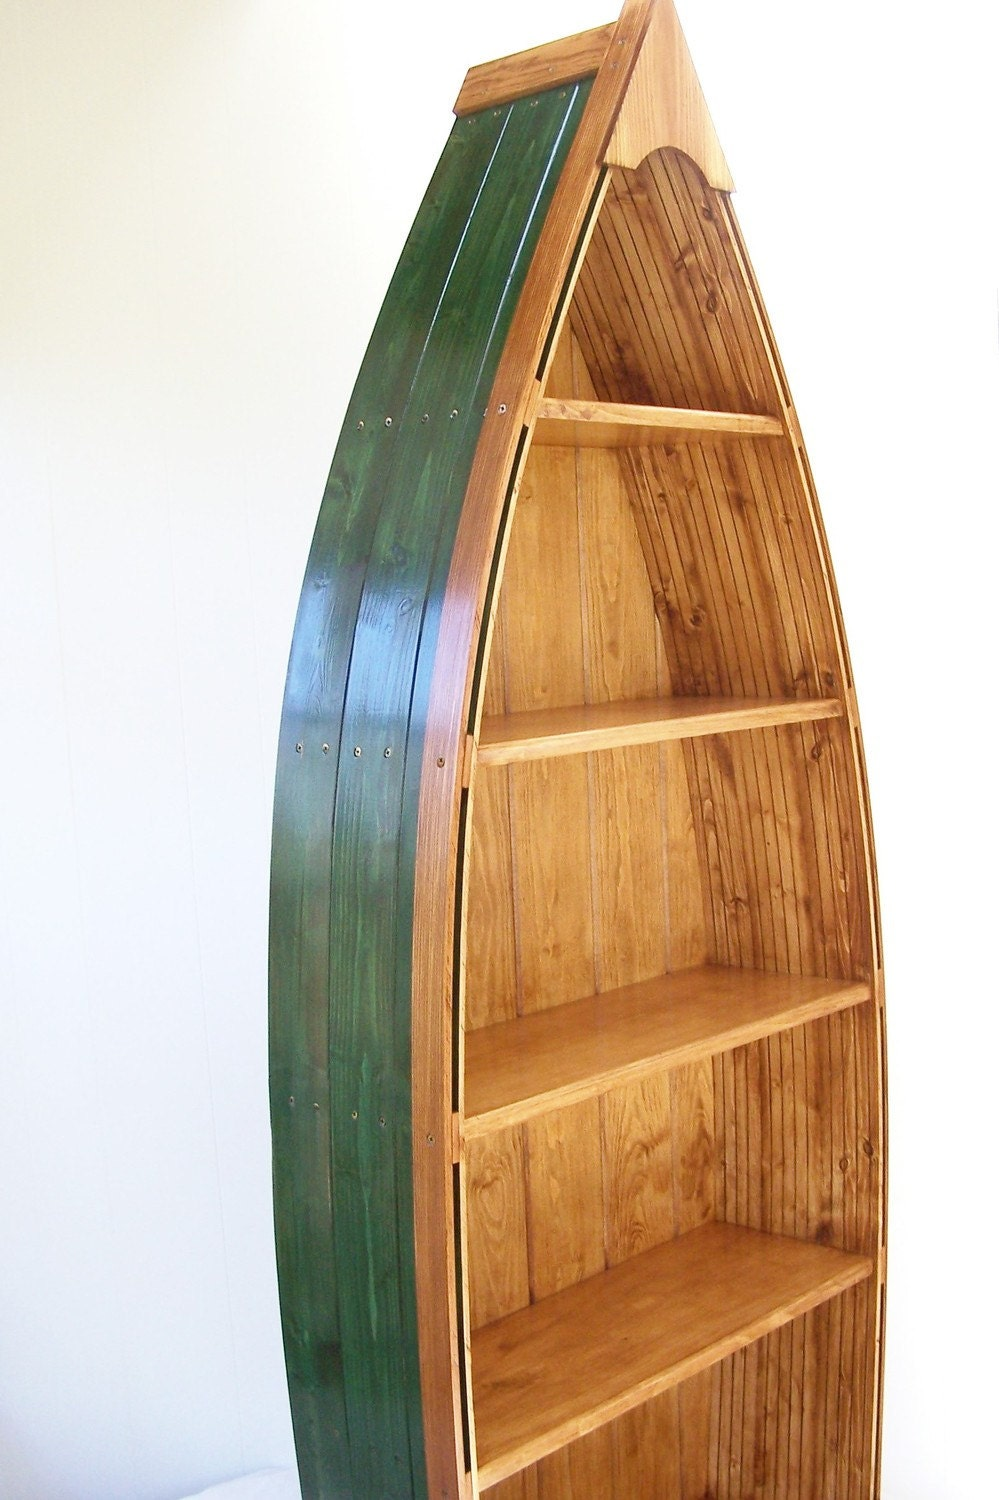 Wood Boat Bookshelf Plans